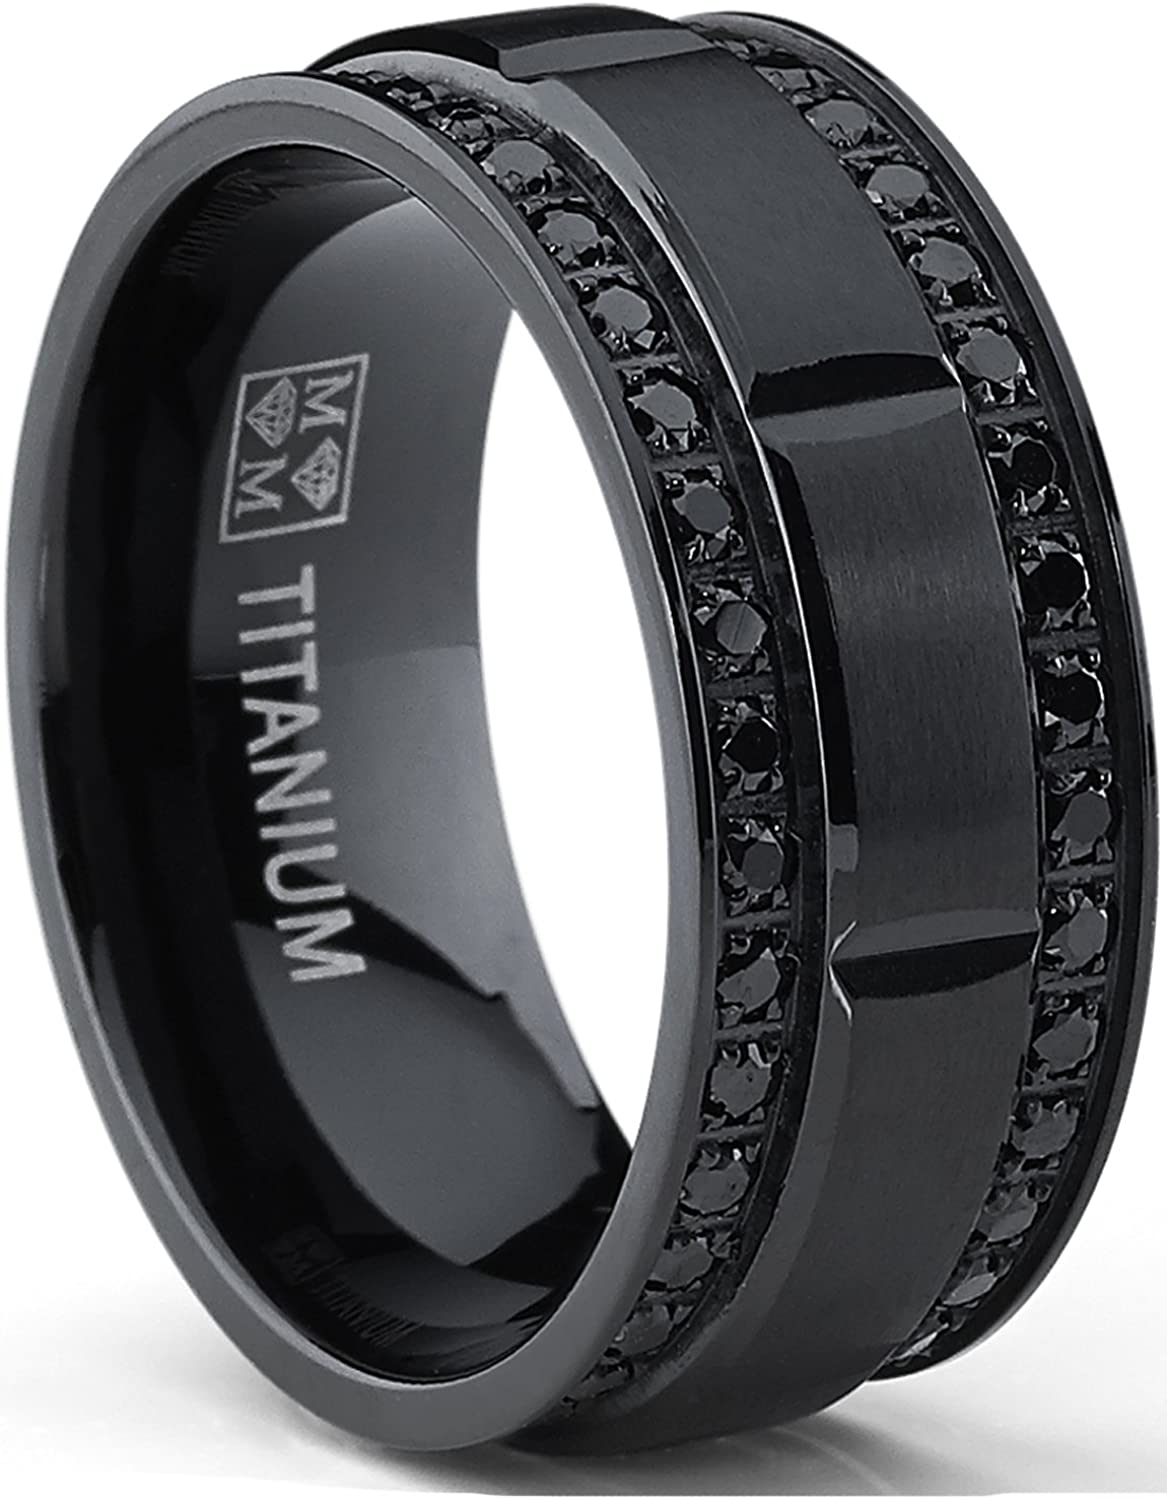 9MM Free Shipping Cheap Bargain Gift Men's Black Max 46% OFF Titanium Wedding Row Band with Ring Double